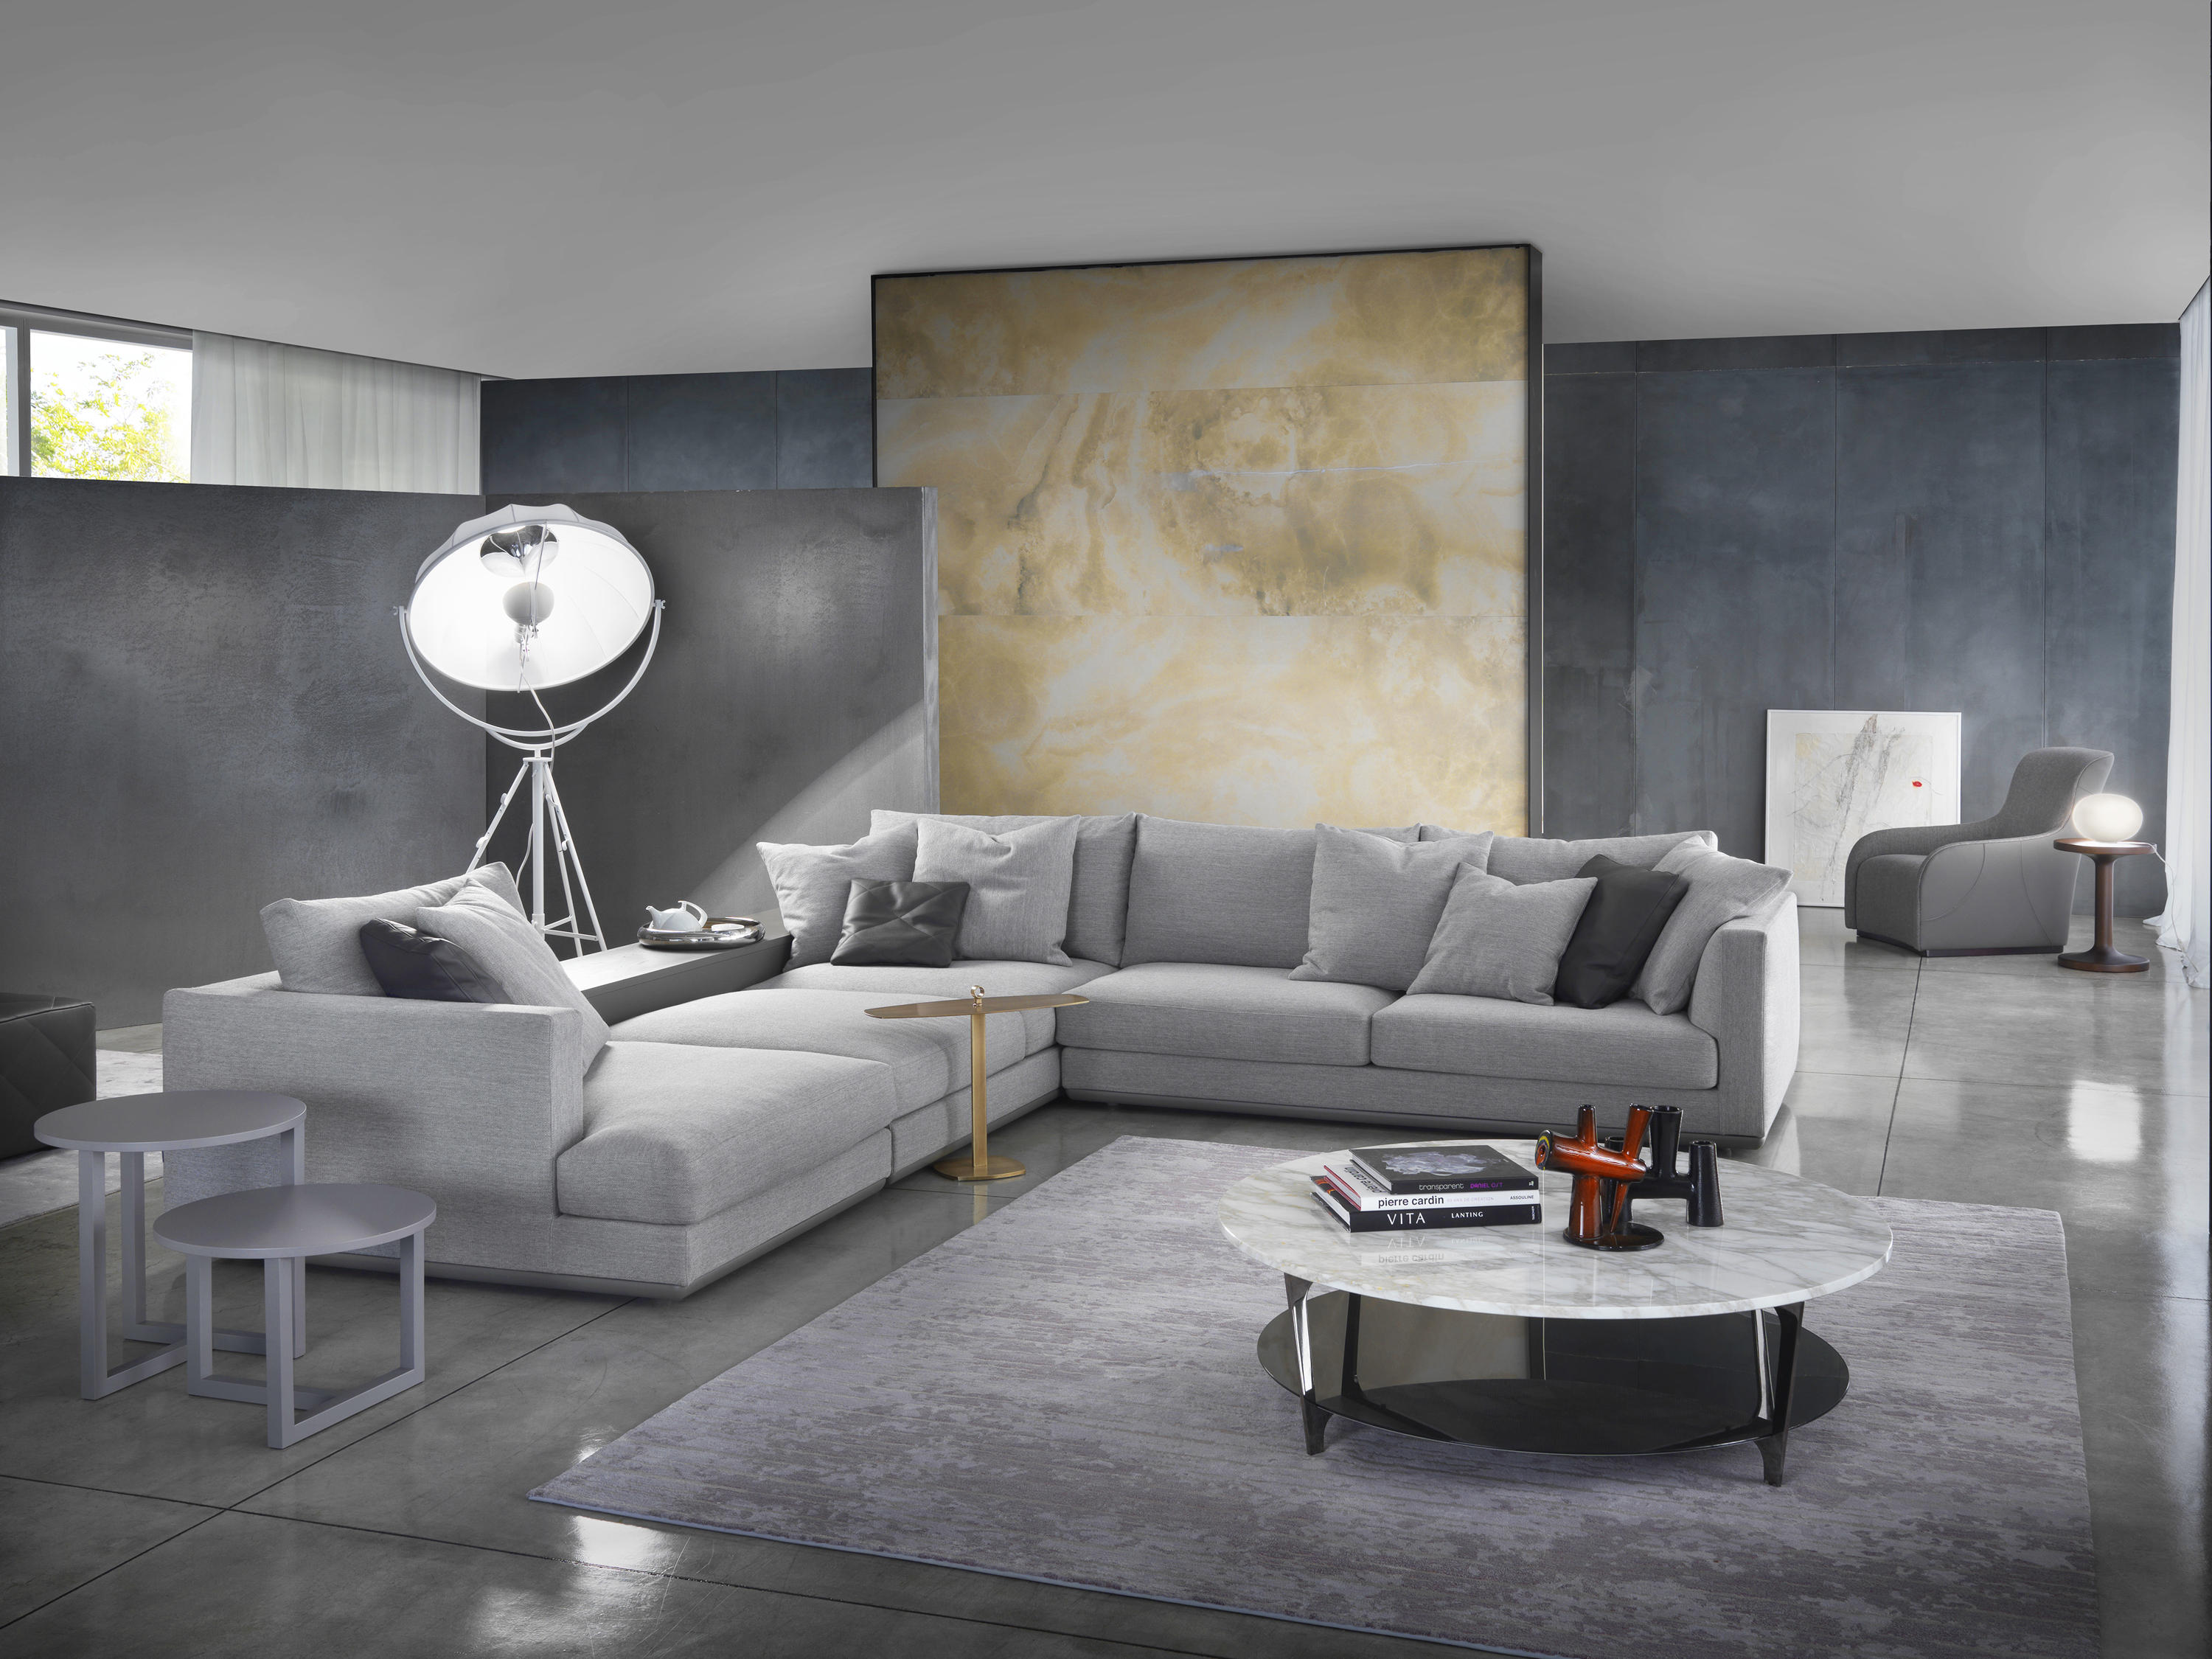 loft sofas loft reclining section sofa lay back with comfort and style thesofa. Black Bedroom Furniture Sets. Home Design Ideas